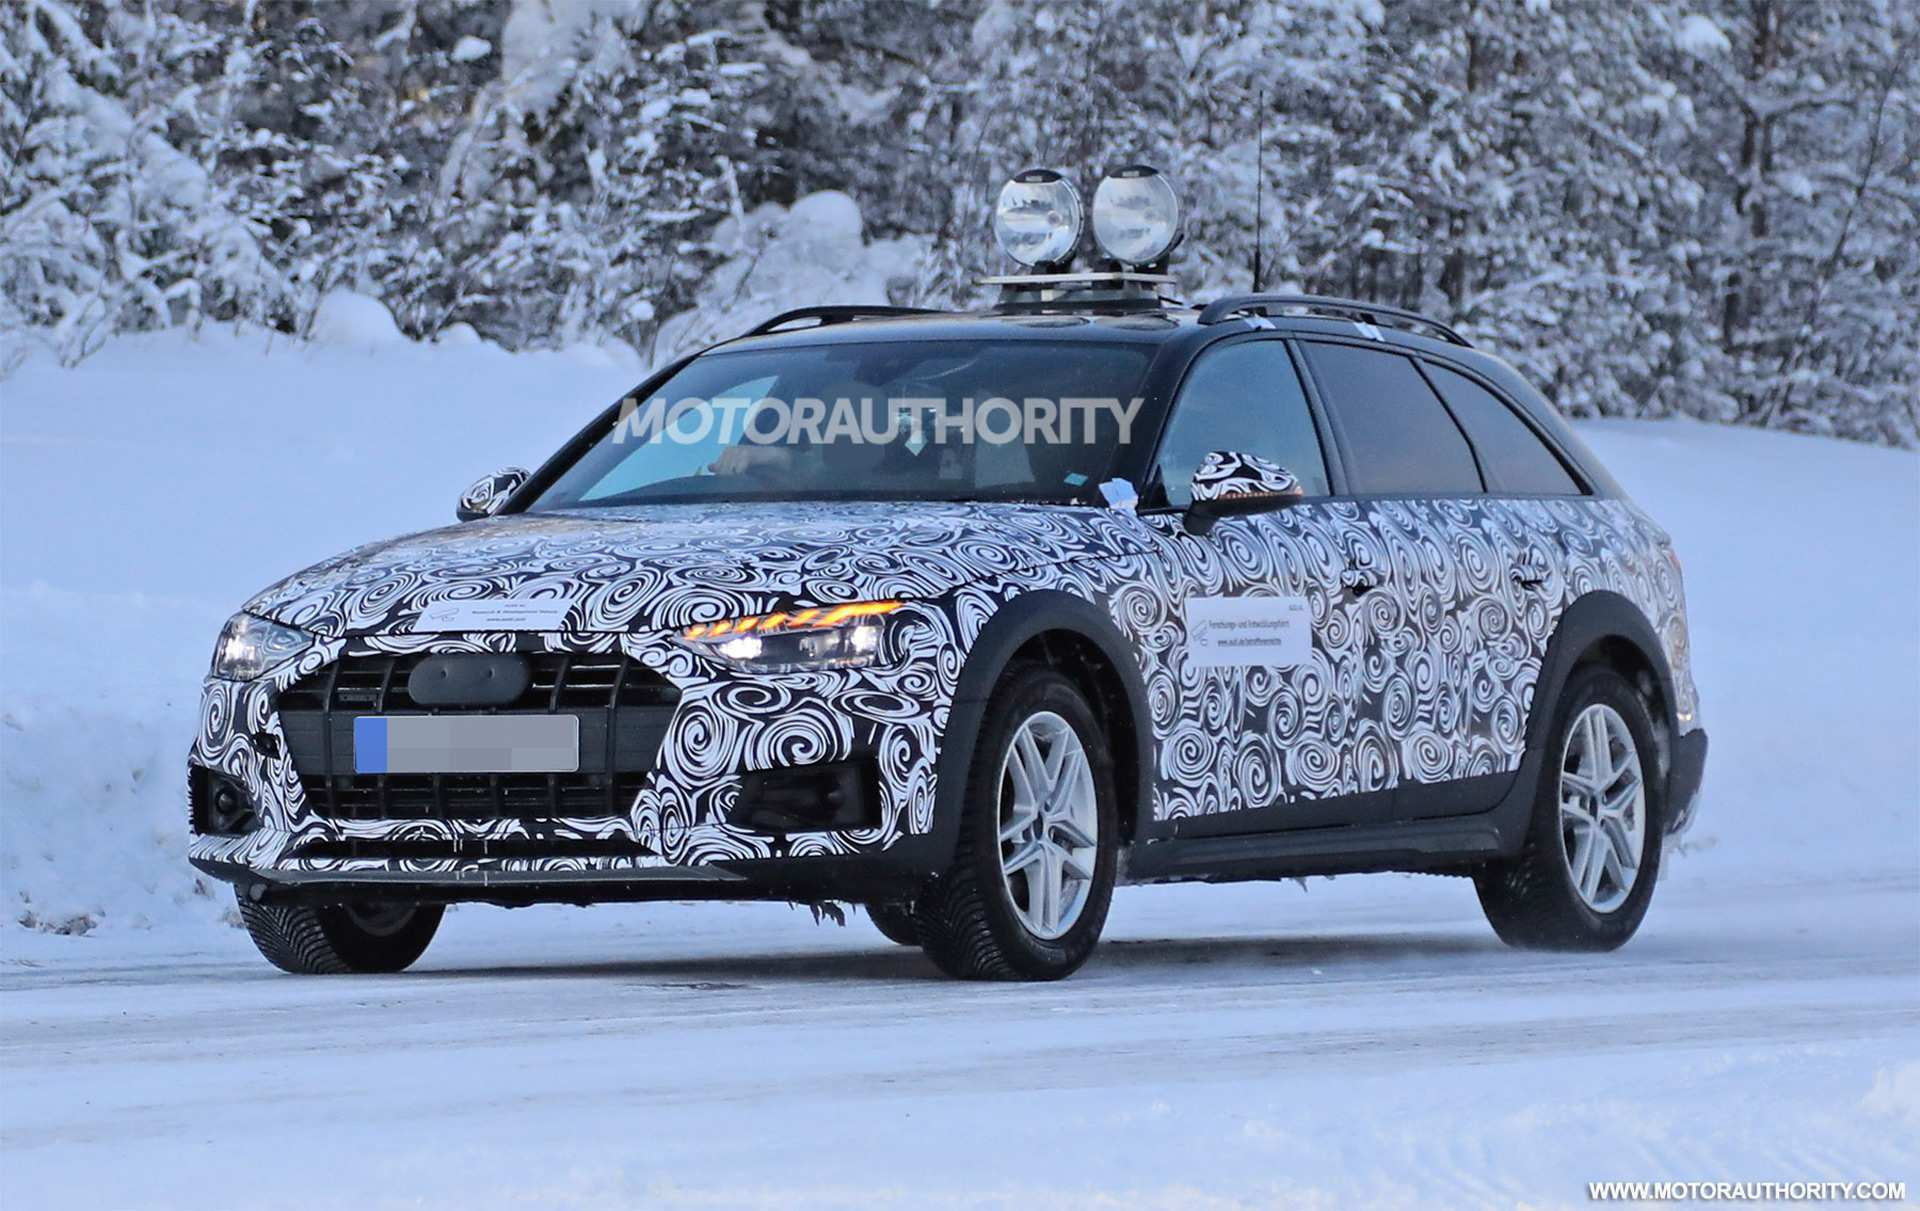 71 All New Audi A4 Allroad 2020 New Review